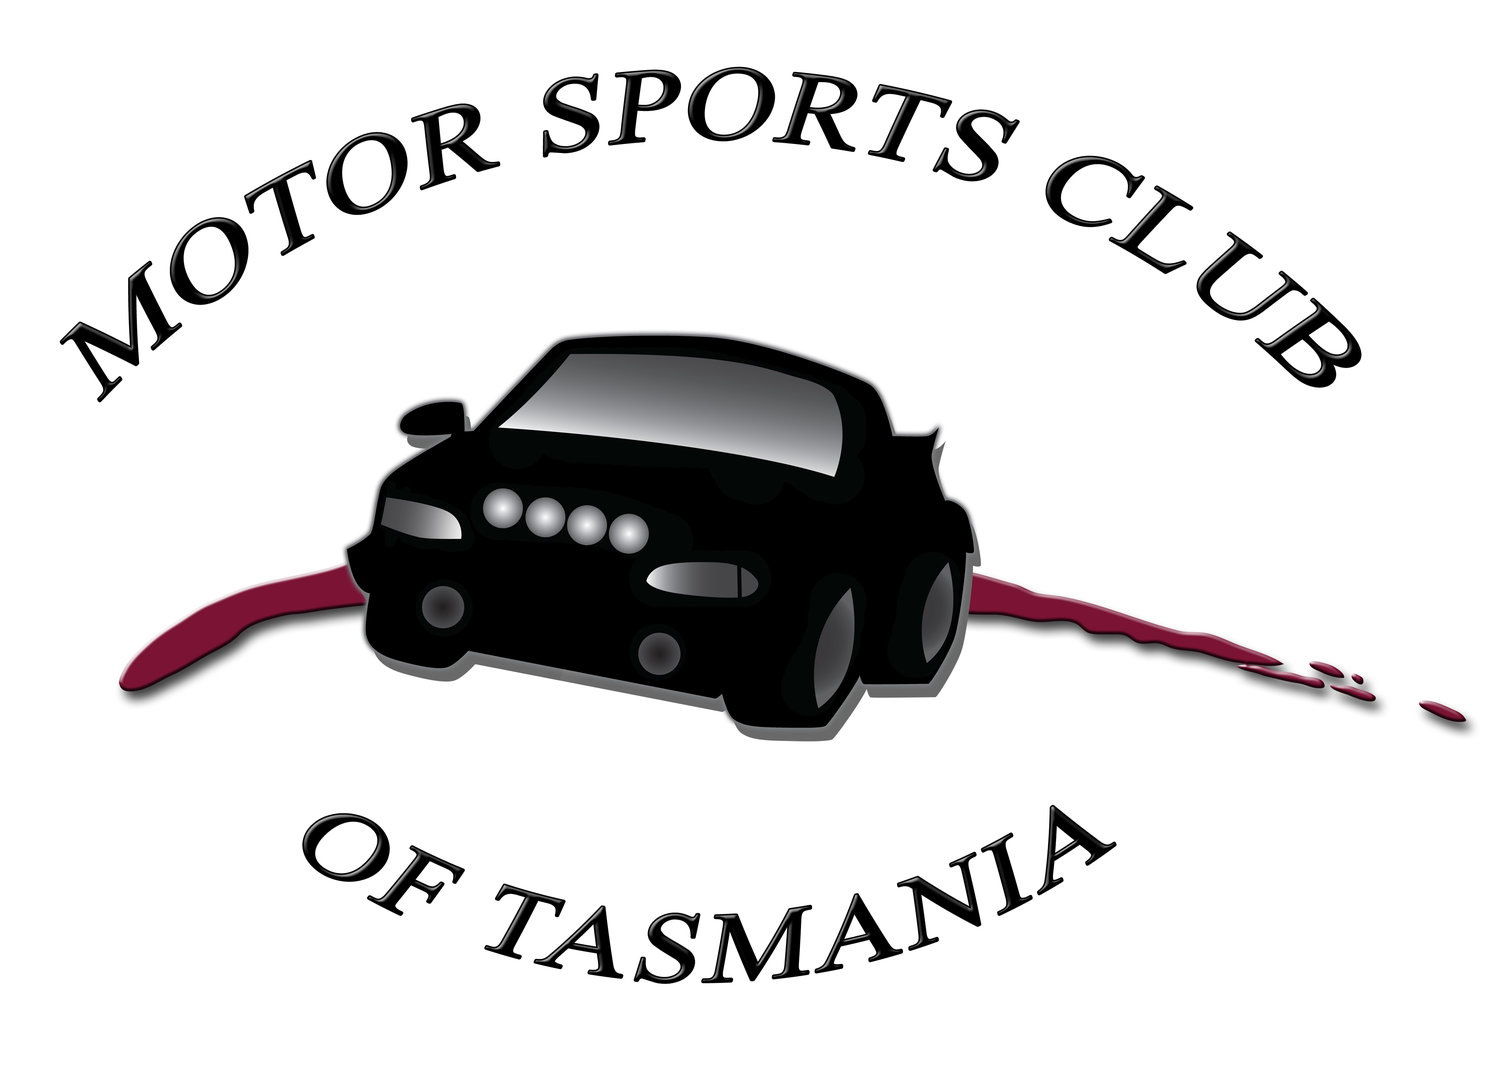 Motor Sports Club of Tasmania Inc.